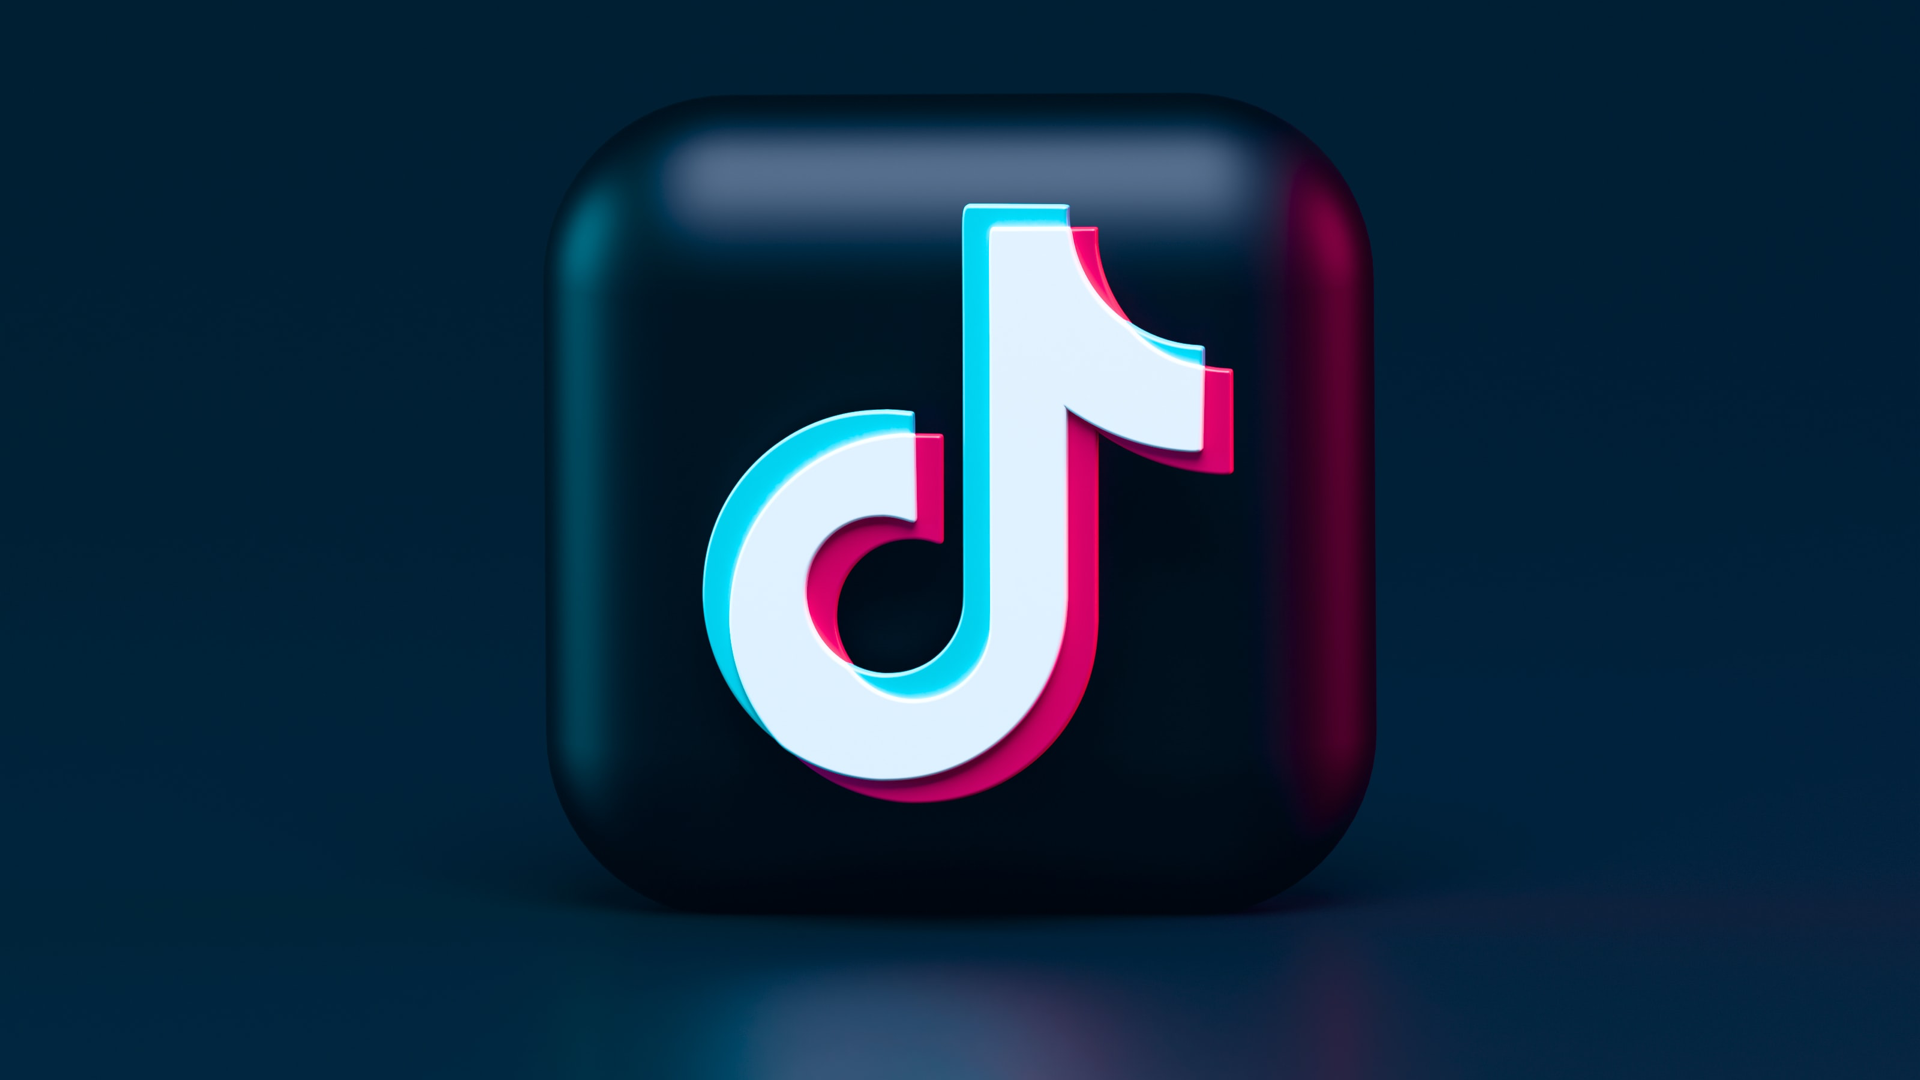 Where Does TikTok's US Ban Stand in 2021 After Failed Oracle Cloud Deal